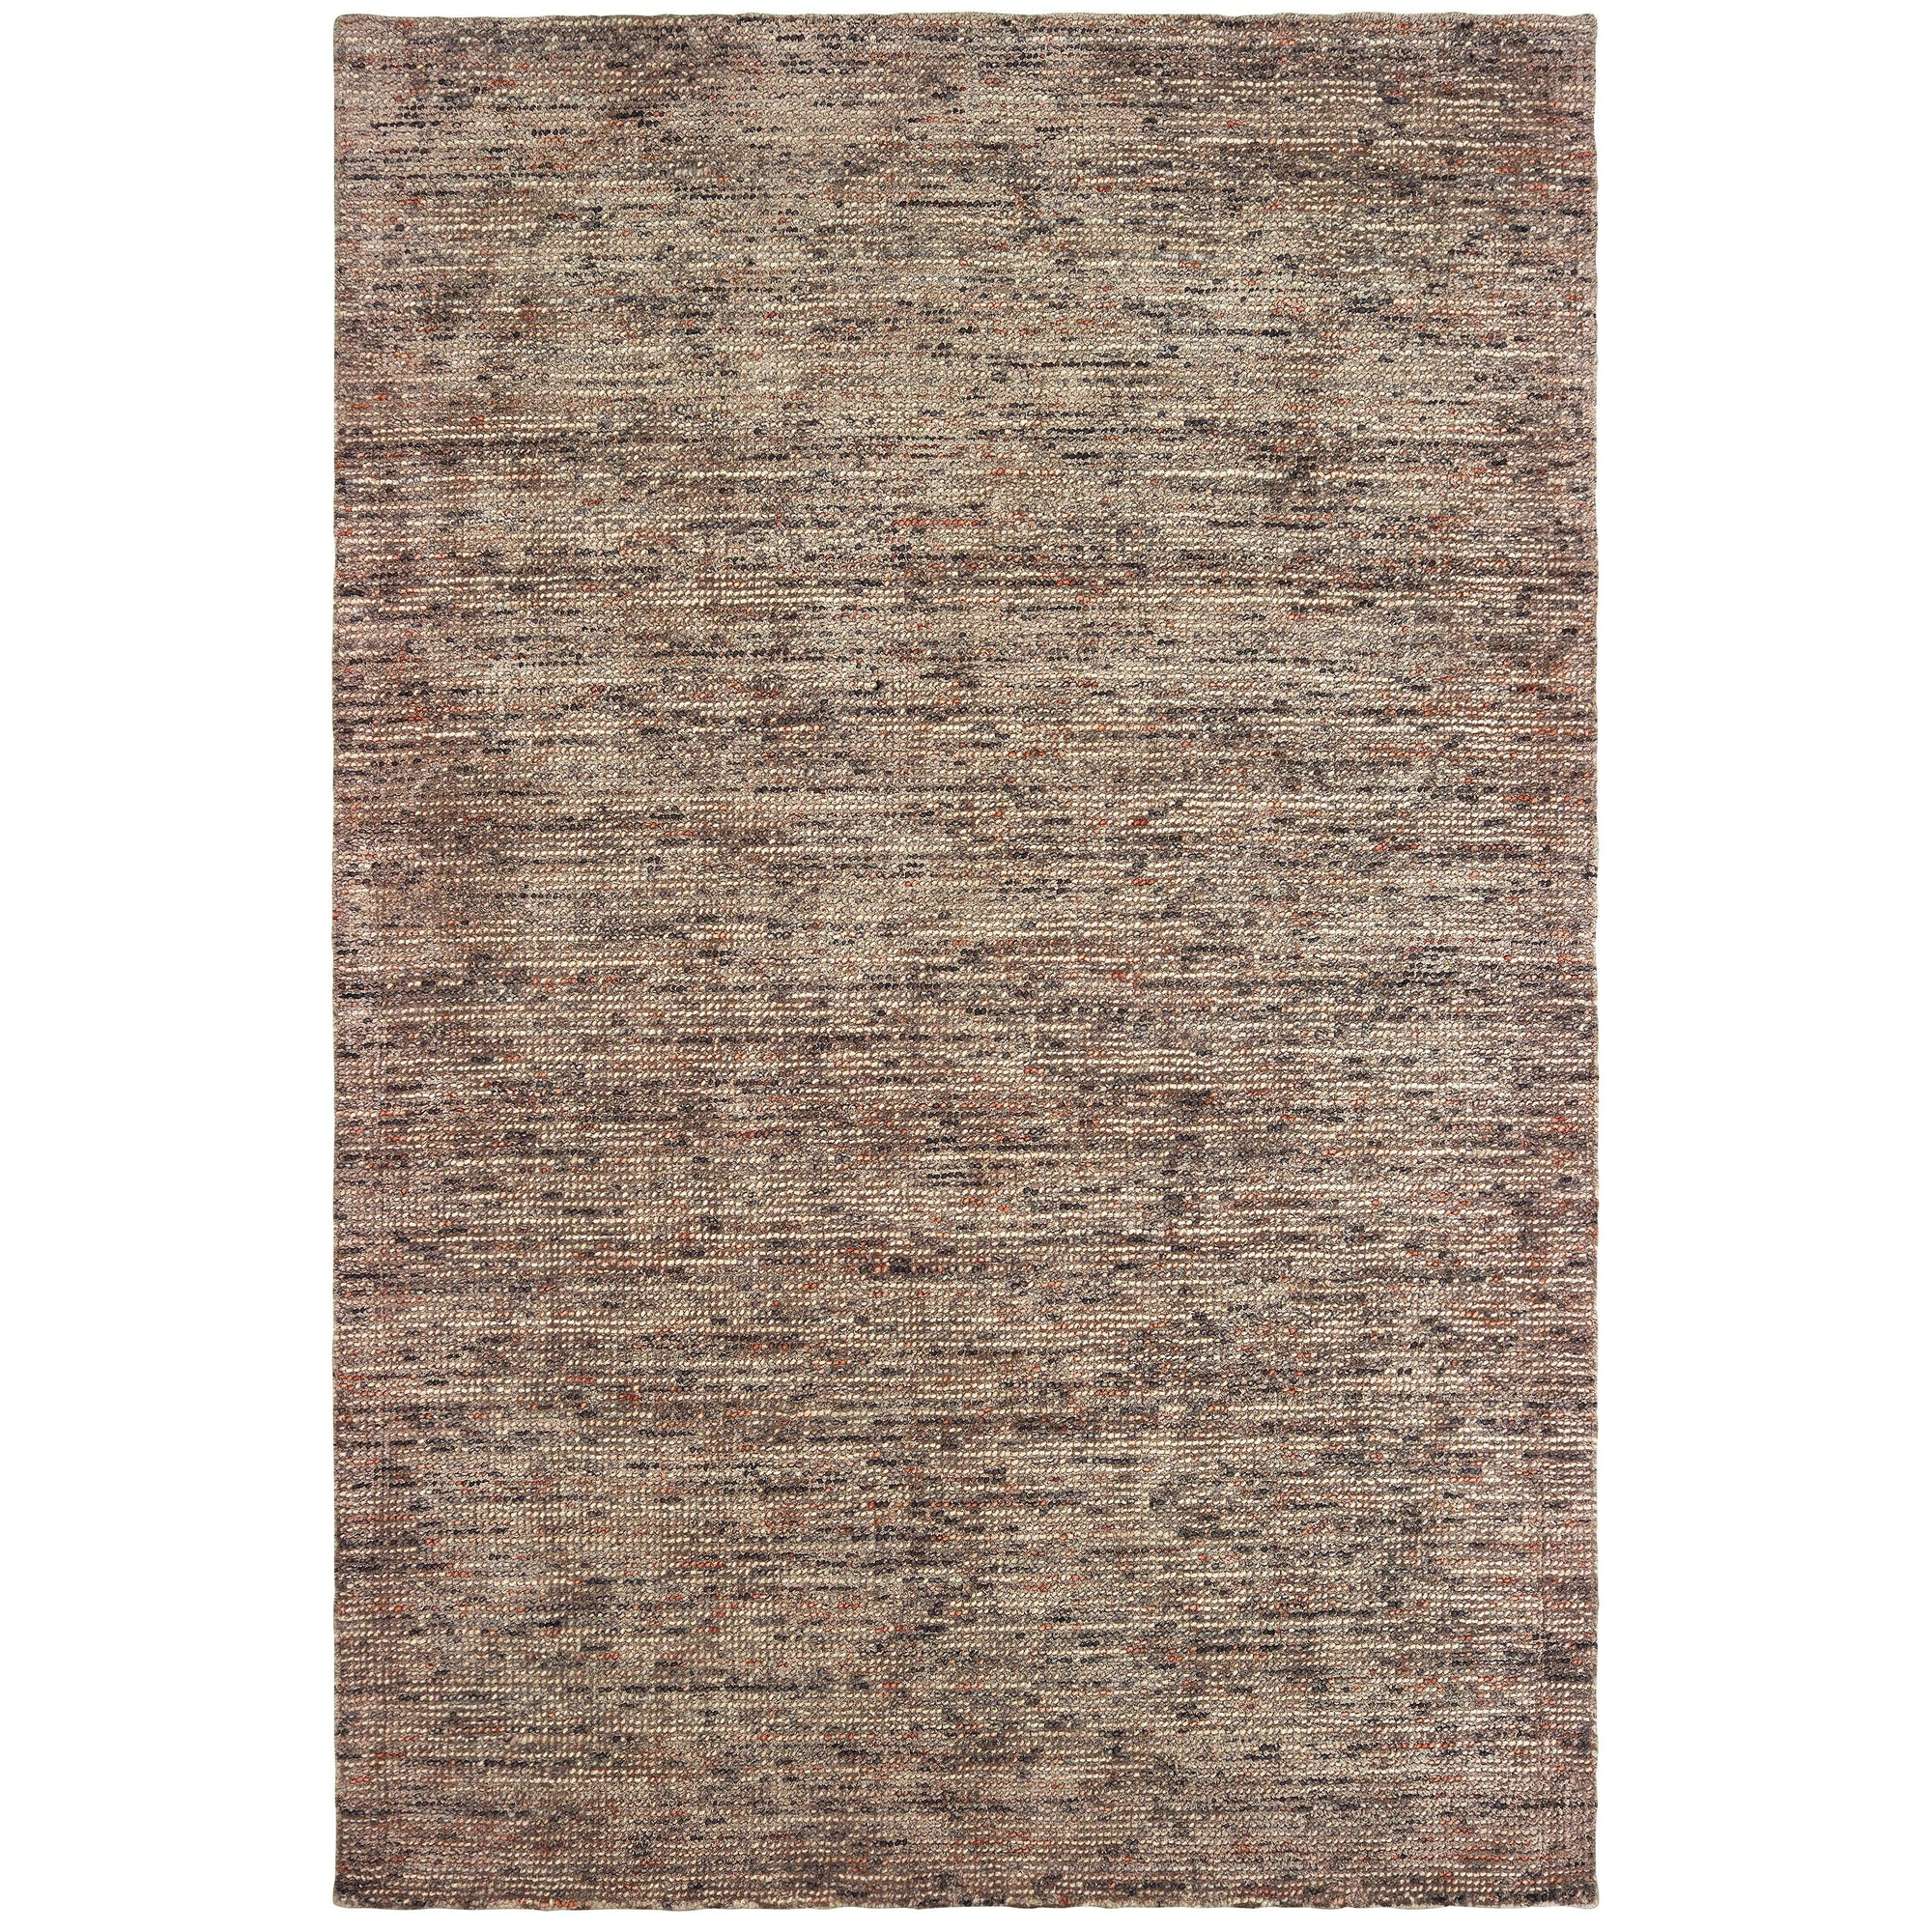 Tommy Bahama Home Lucent 45907 Taupe/Pink-Area Rug-Tommy Bahama Home-5' X 8'-The Rug Truck